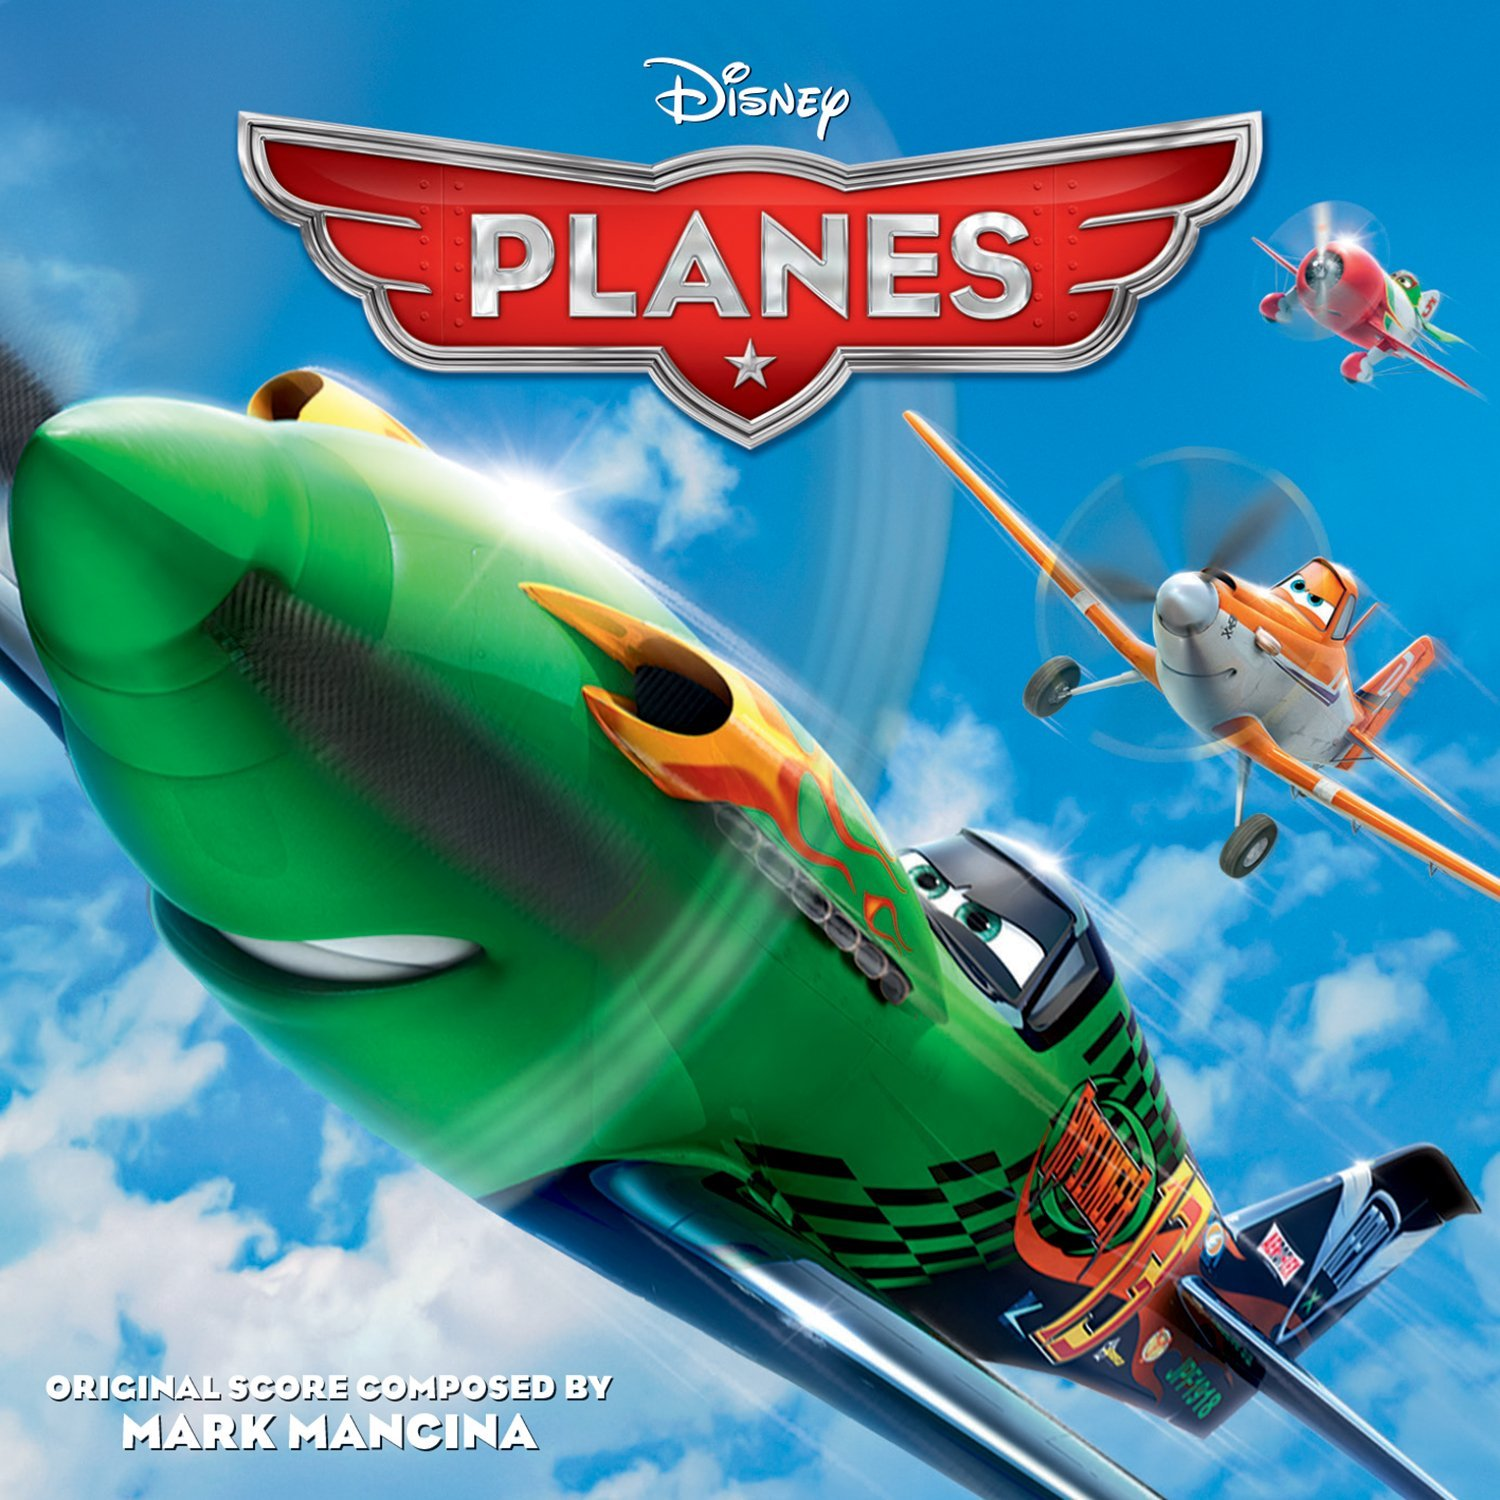 airplane toys with Disney Planes Soundtrack on Lego Friends 2018 Neuheiten Das Sind Die Neuen Sets 38602 moreover Disney Airplane China together with B737 800 Ryanair Plastic Click Together Scale Model Plane as well Toy Shop 796066 furthermore Disney Planes Soundtrack.